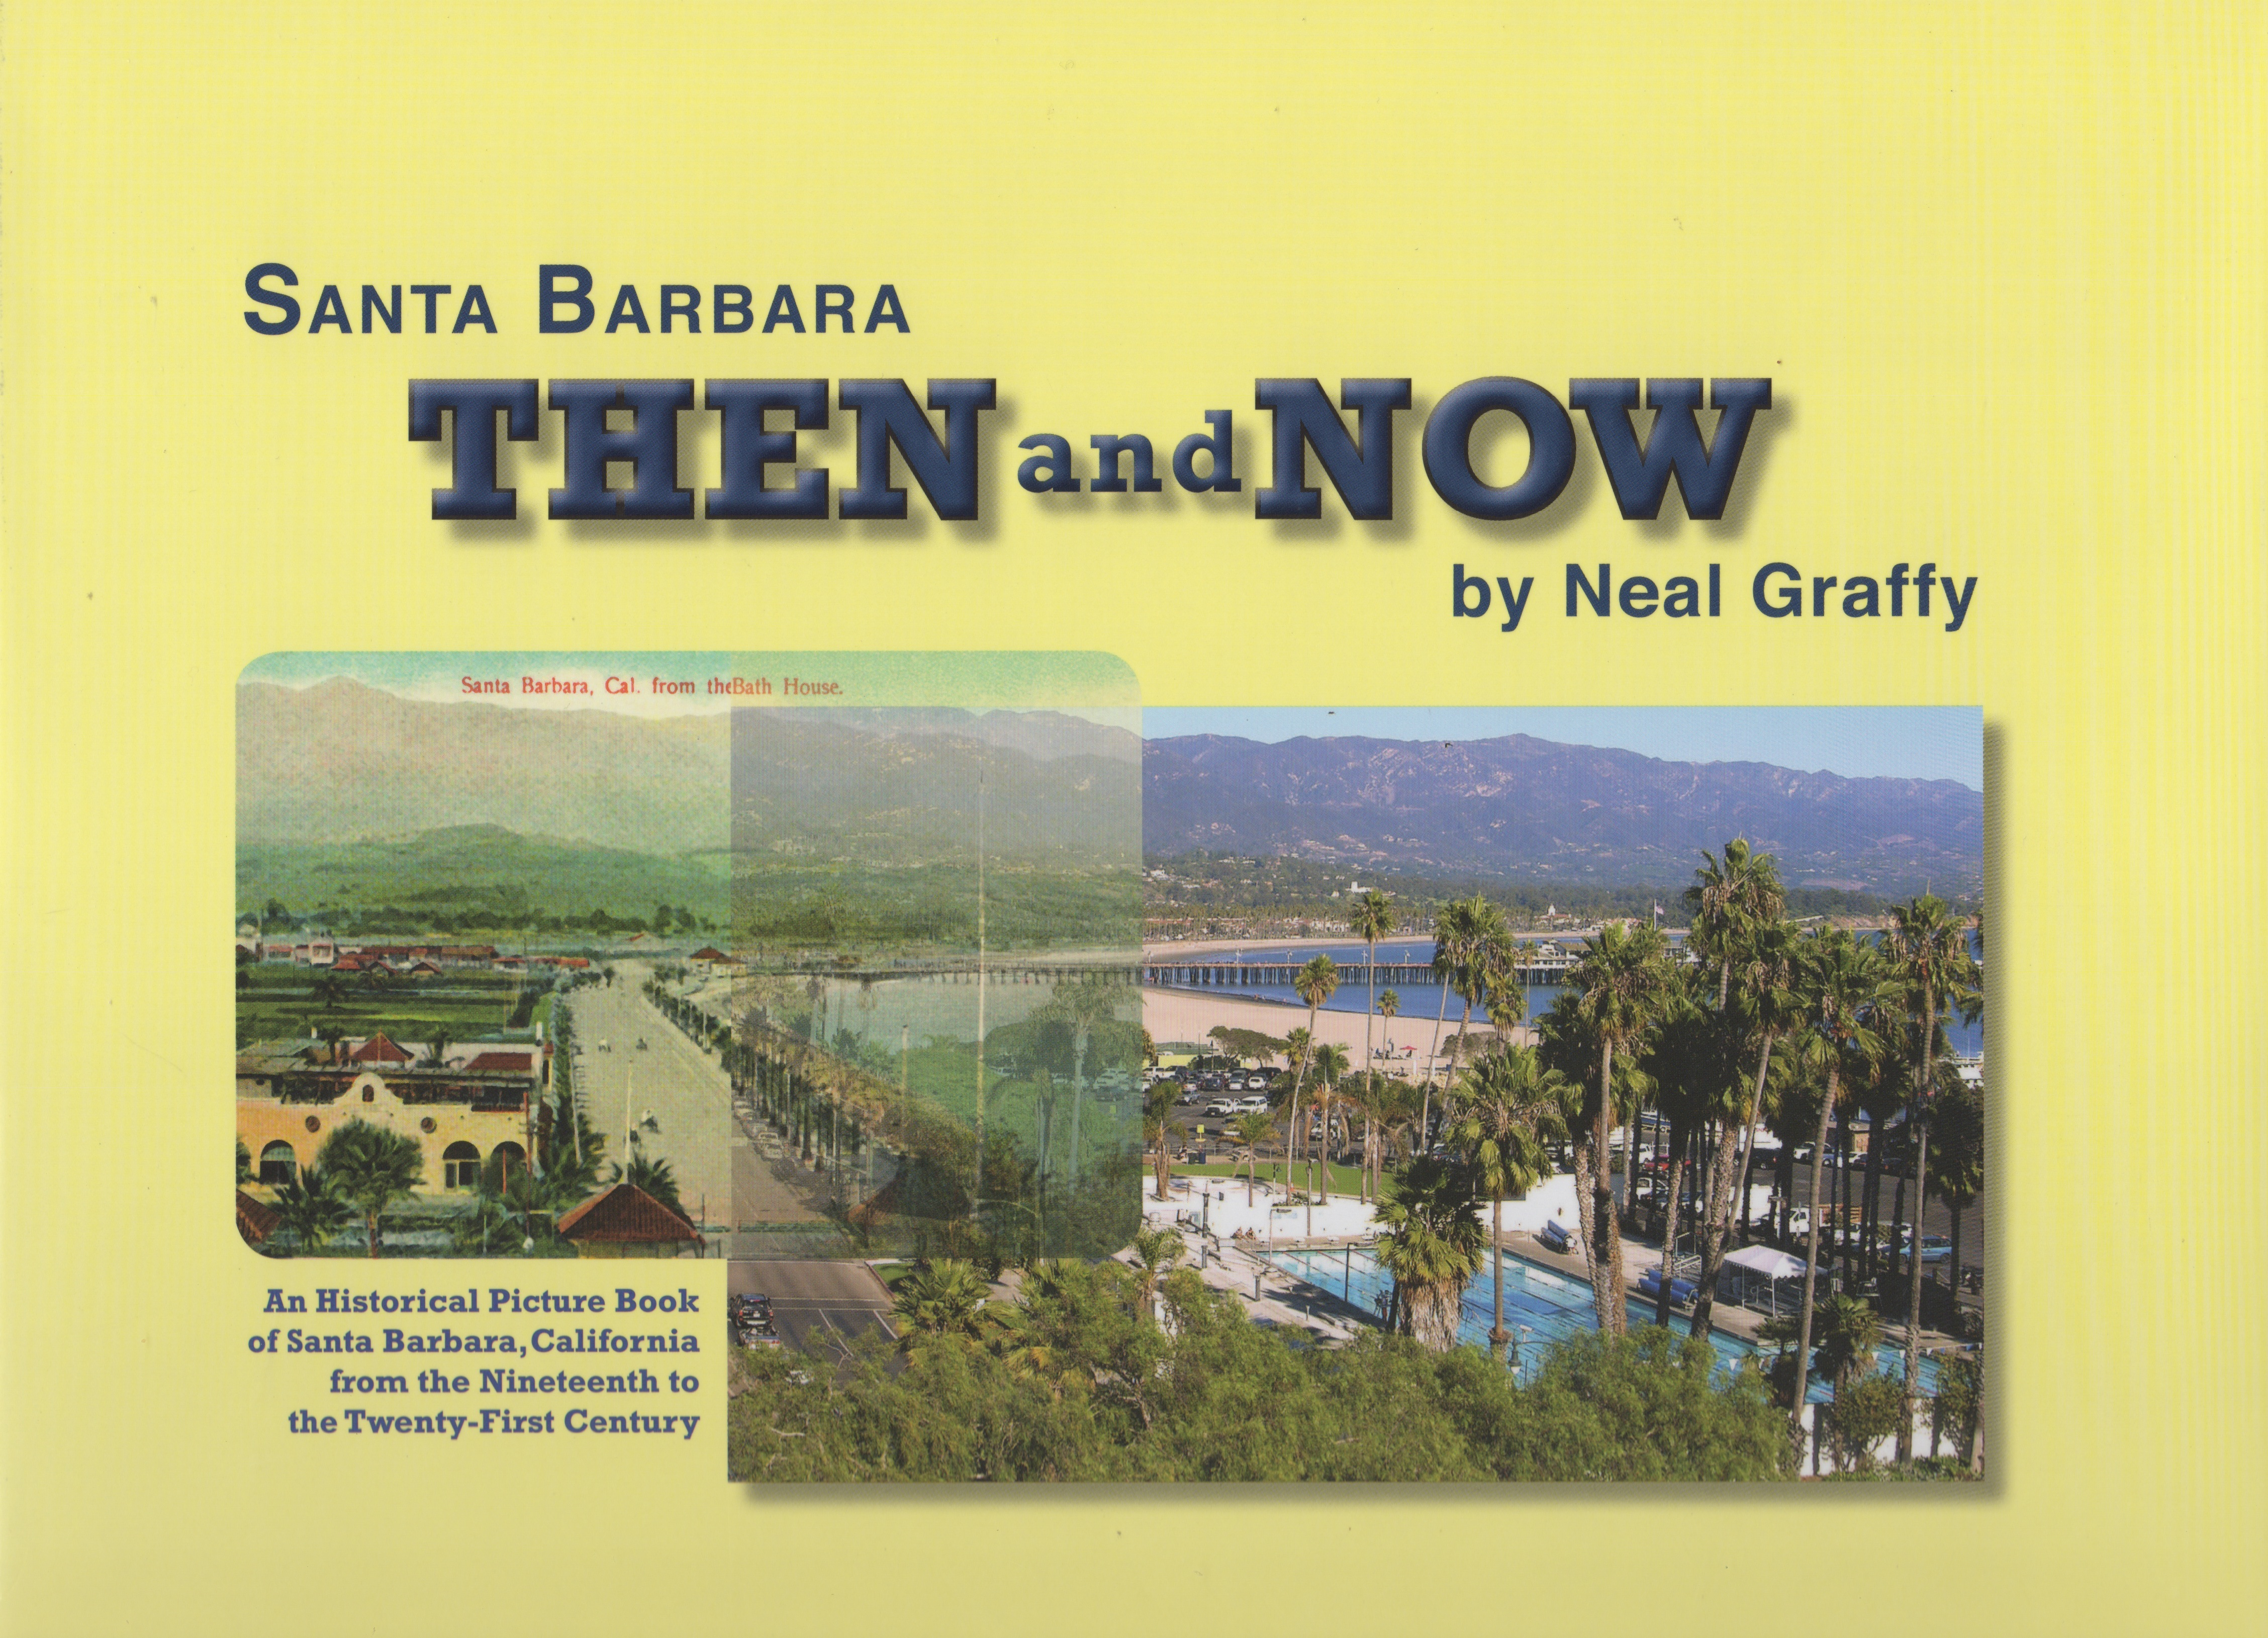 Santa Barbara Then and Now, by Neal Graffy, Soft Cover